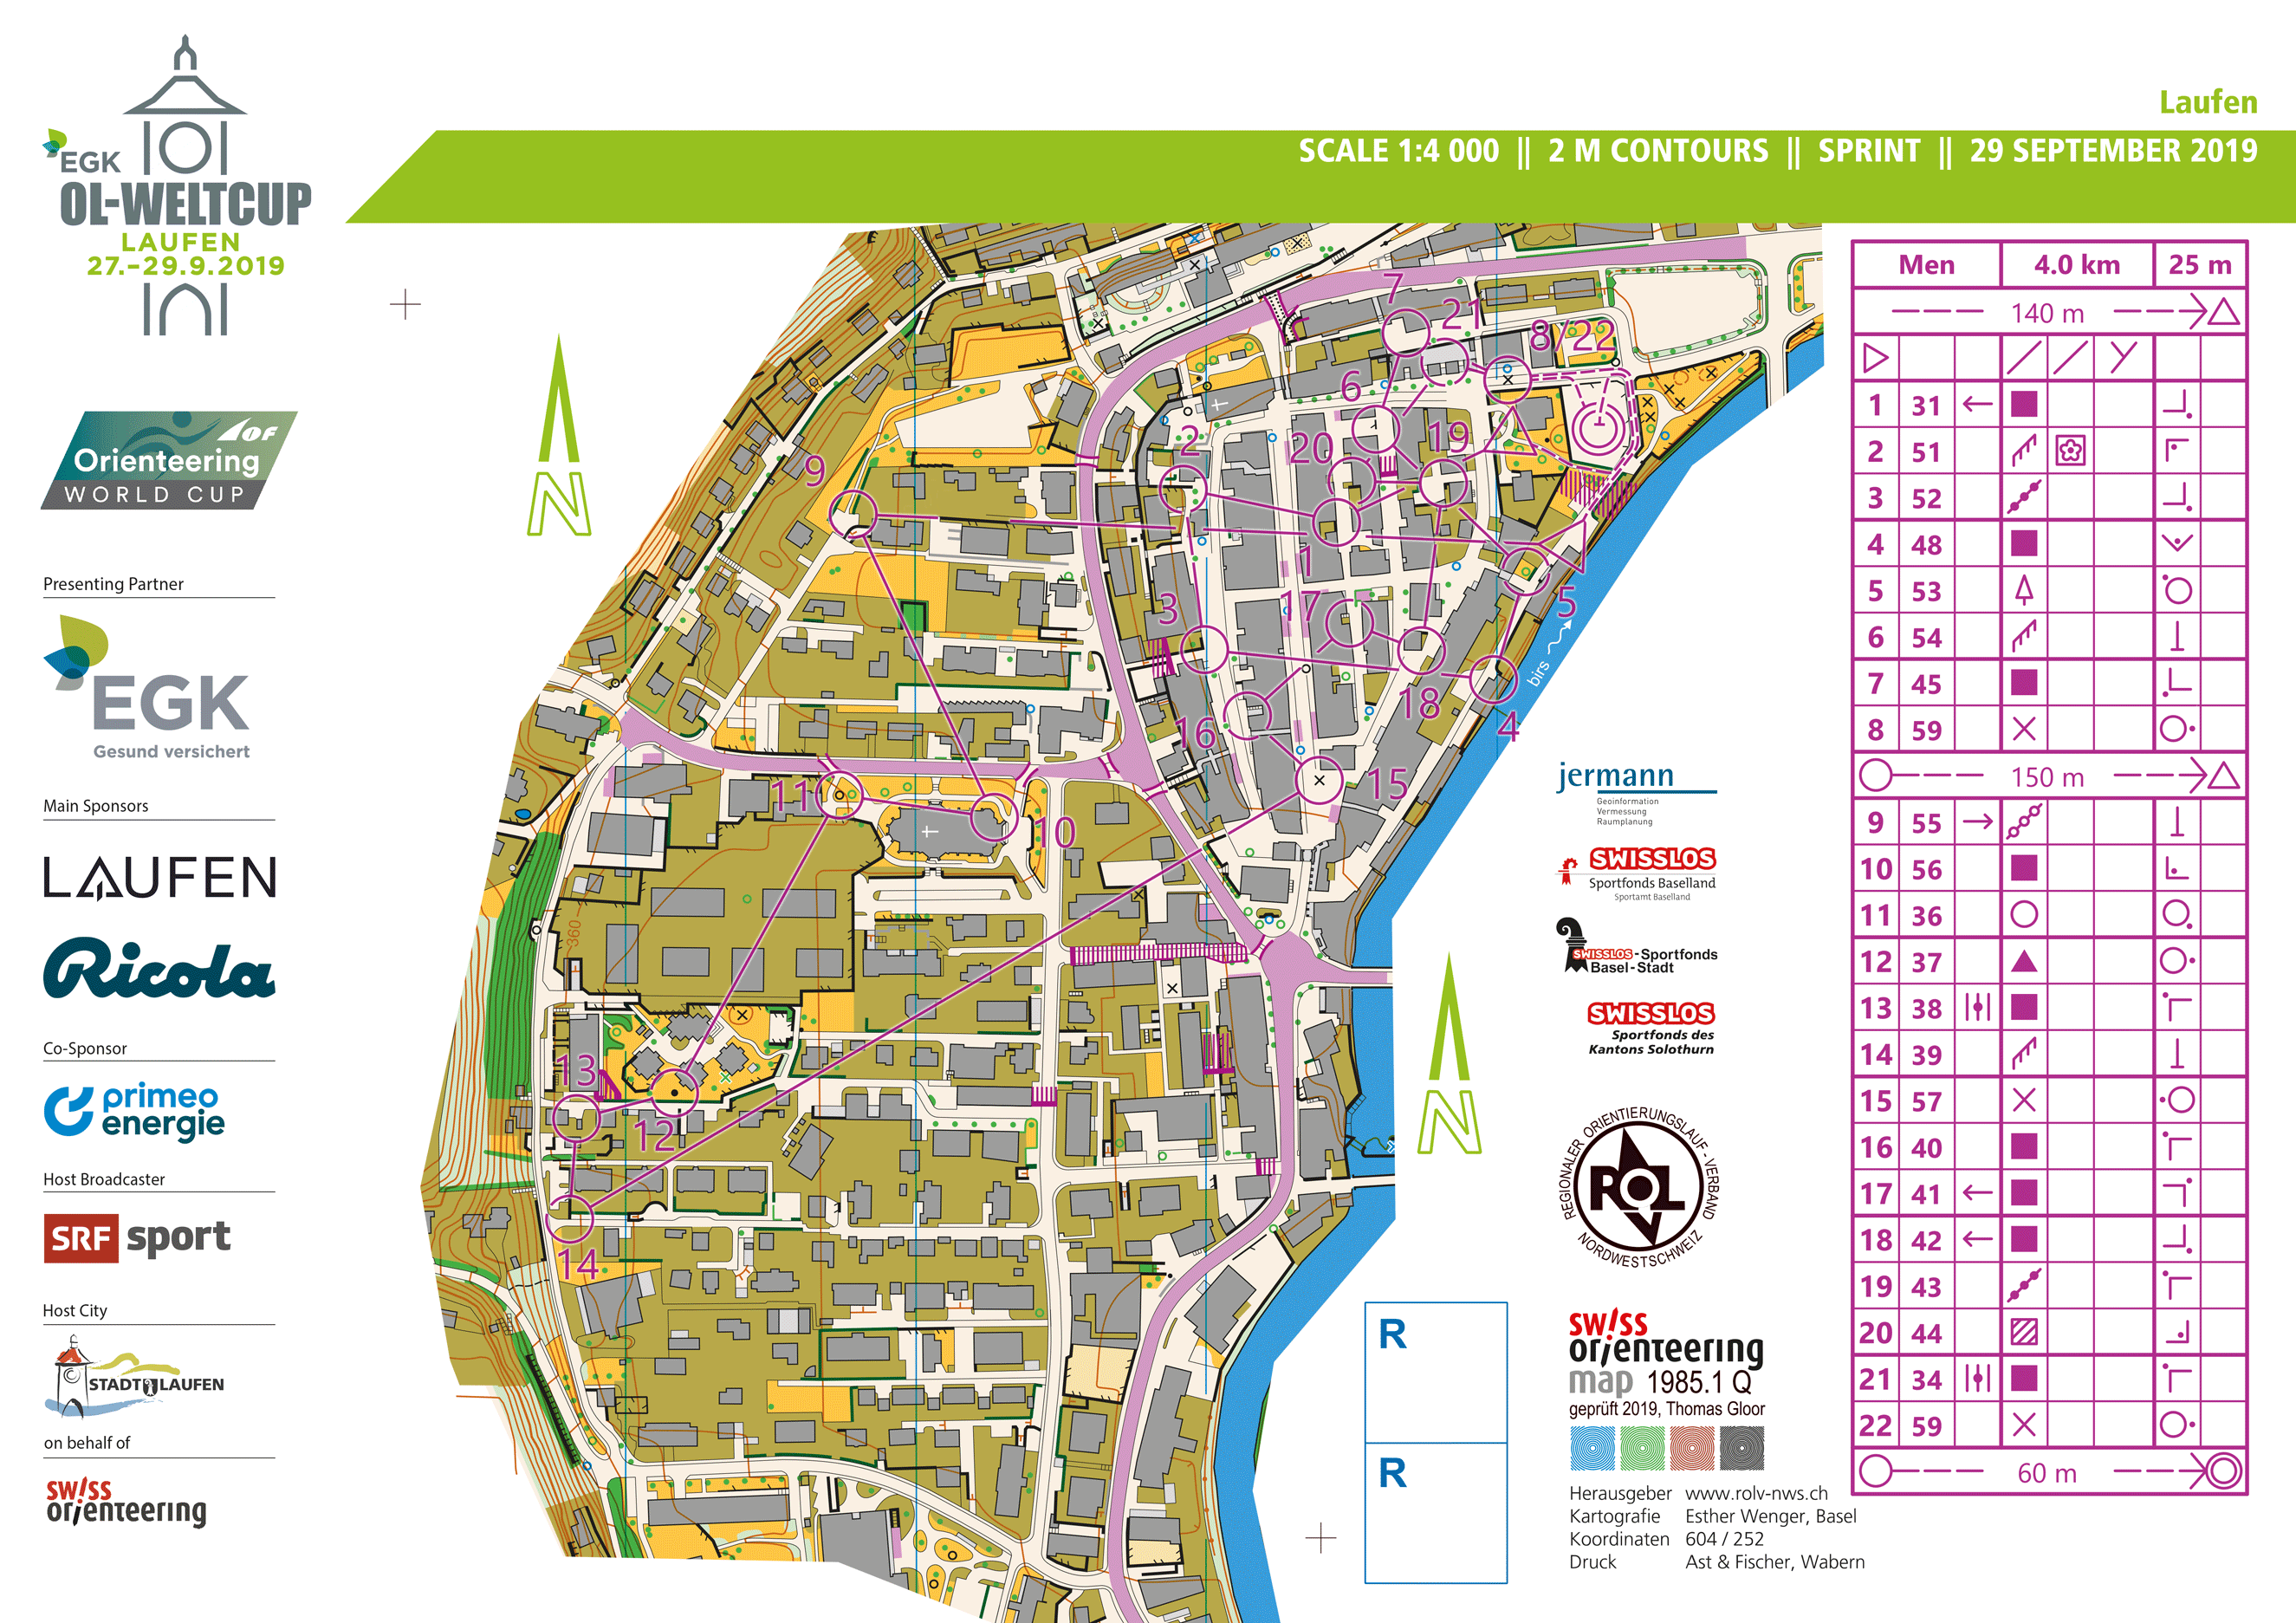 World Cup Switzerland Sprint 2019 Maps Results And Gps Analysis World Of O News